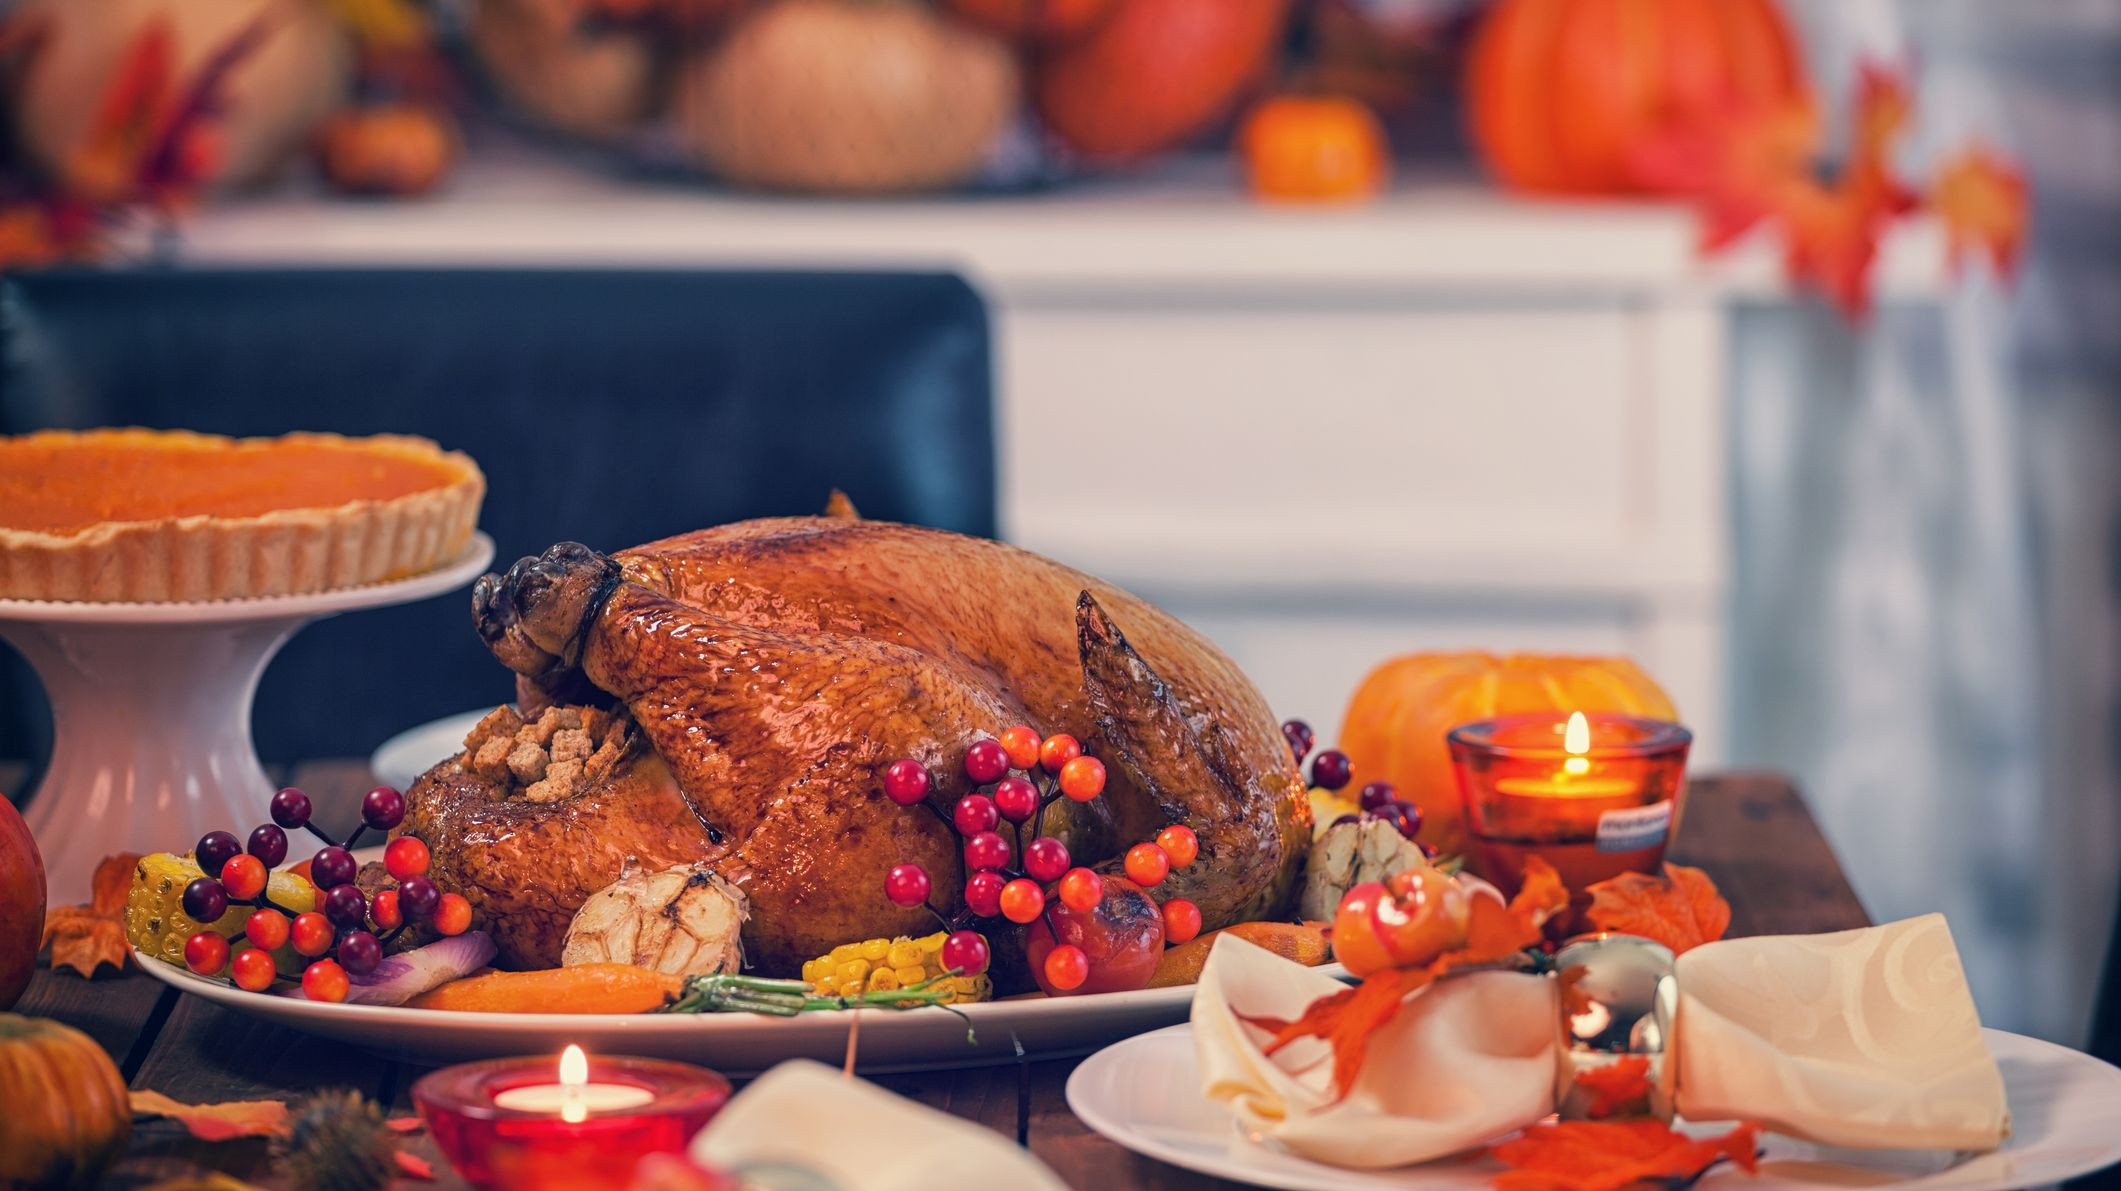 Why Do We Eat Turkey For Thanksgiving  The History Behind Why We Eat 10 Dishes at Thanksgiving